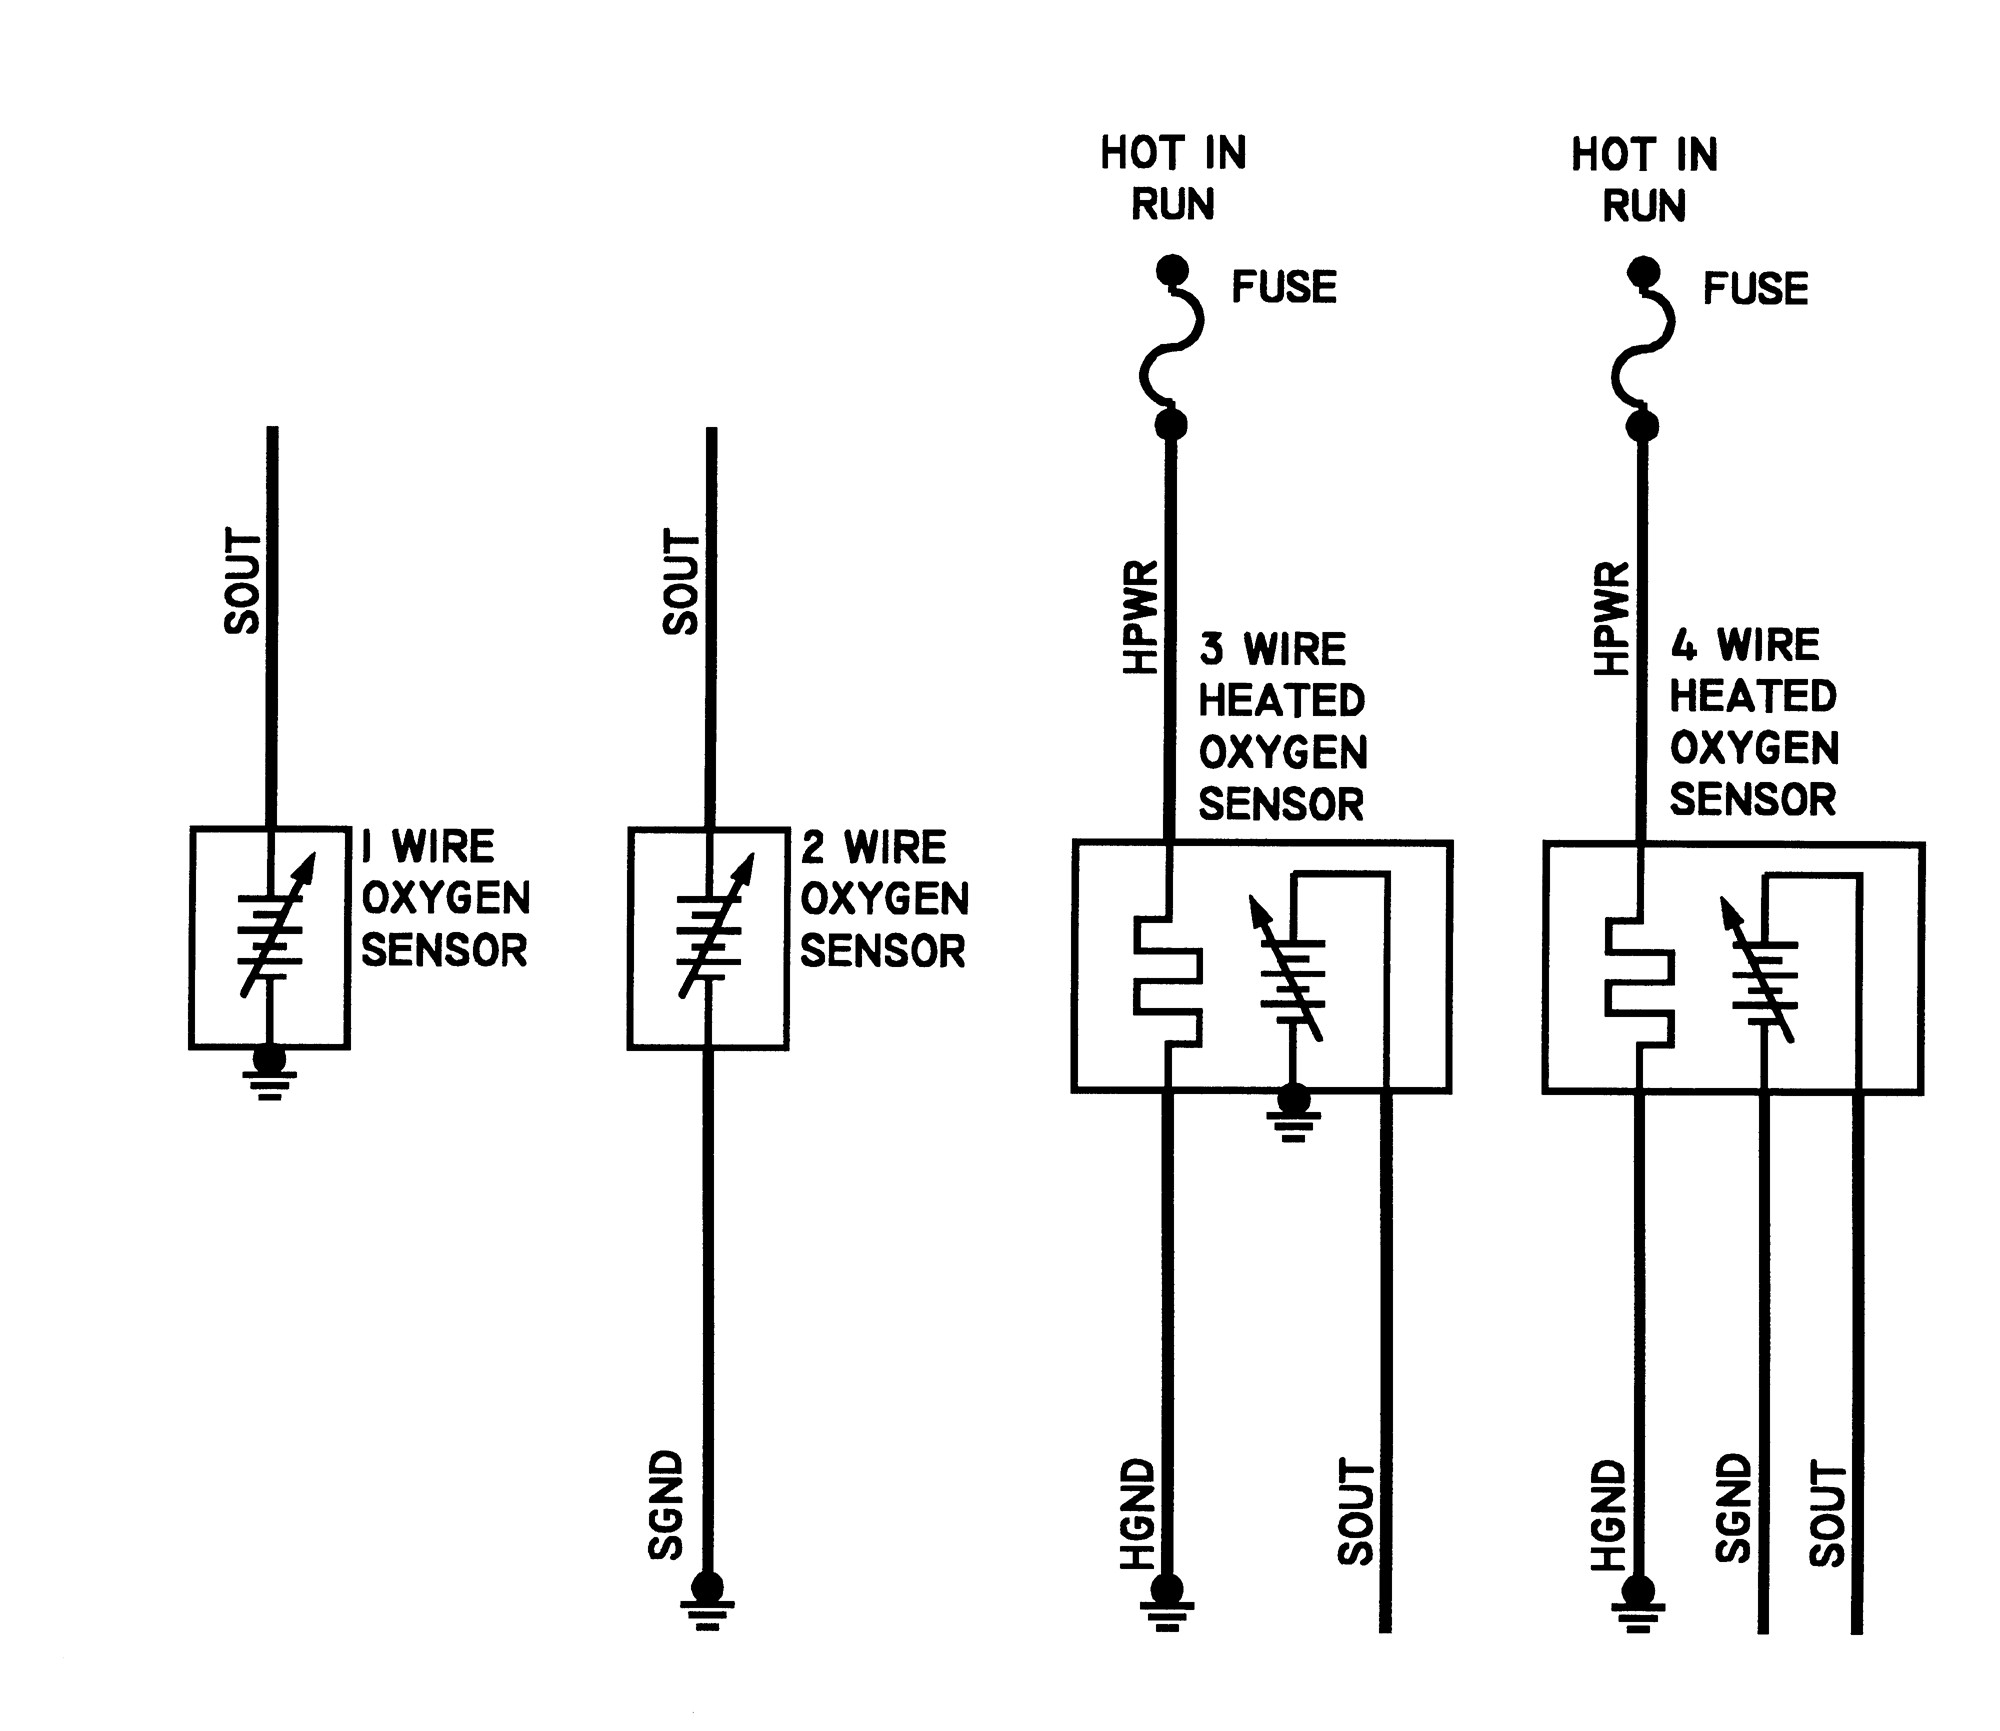 Universal Oxygen Sensor Wiring Diagram. Coil And Distributor ... on